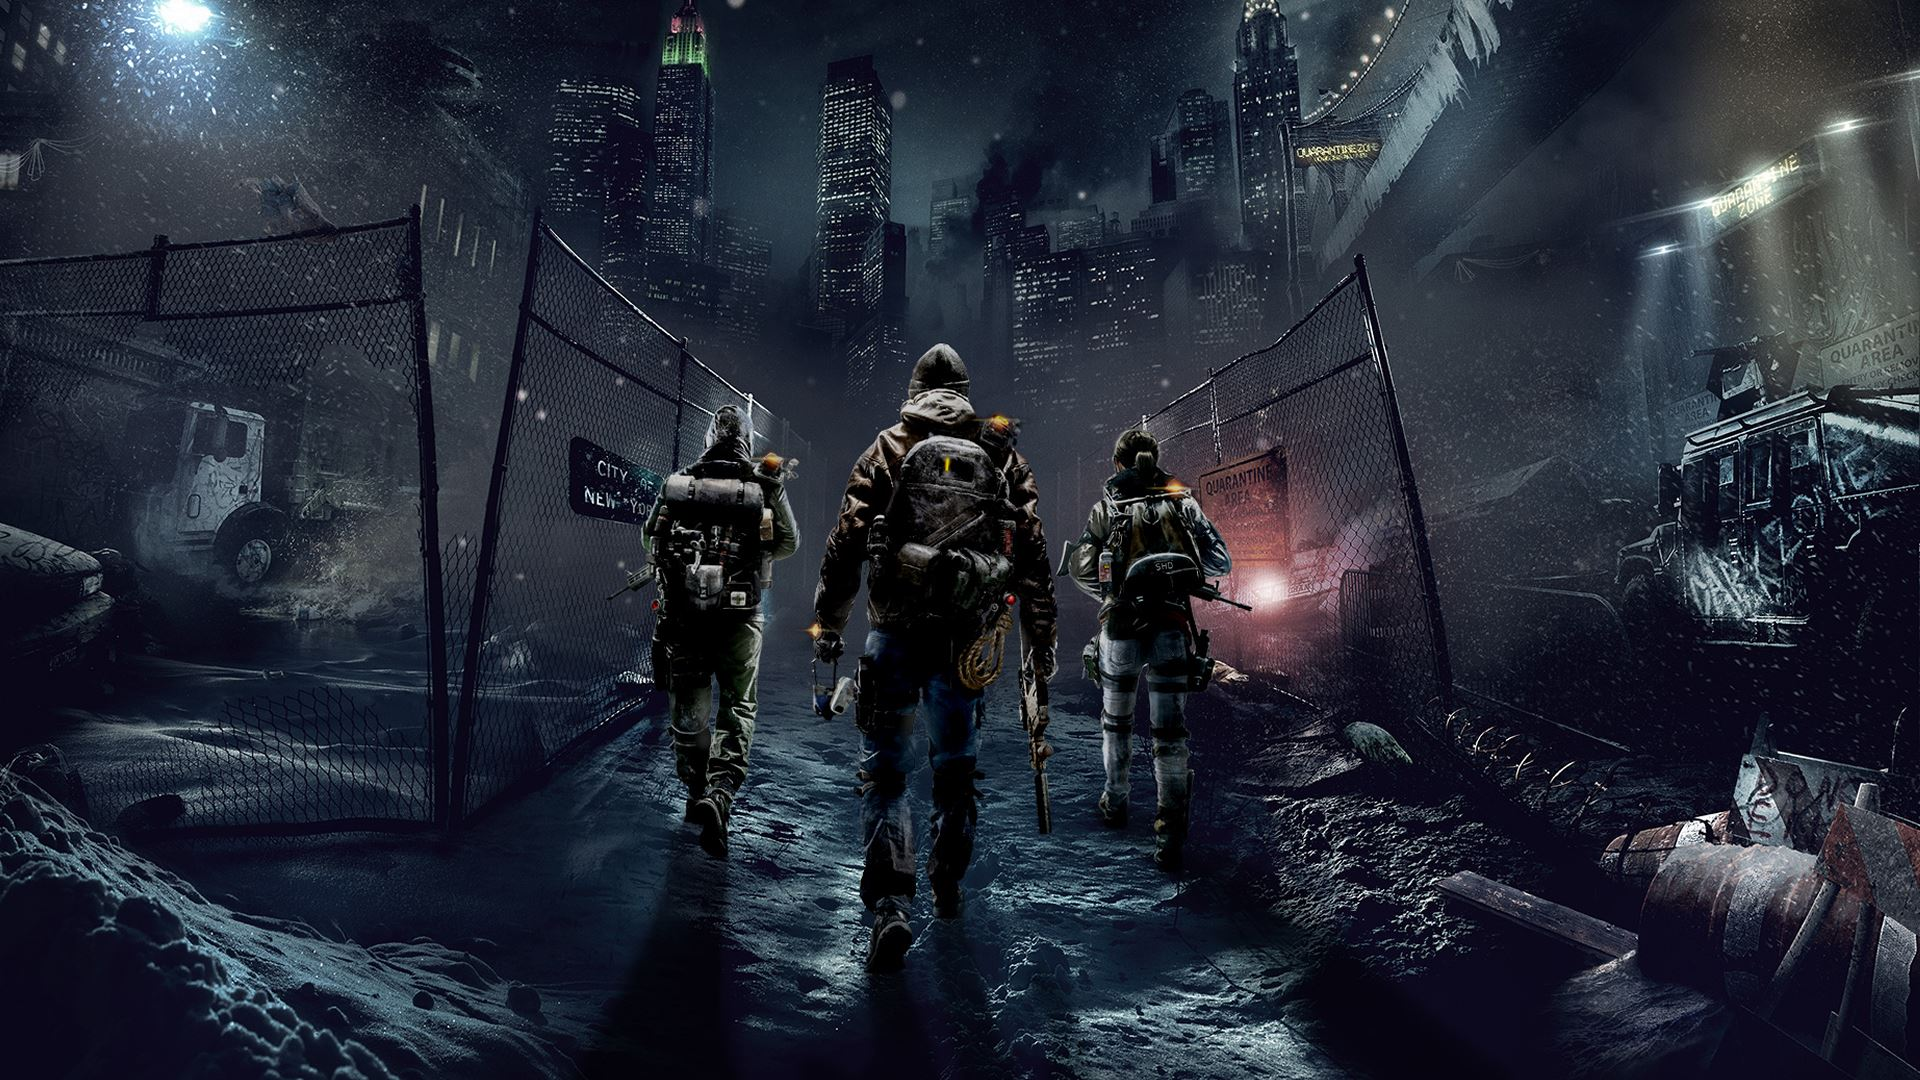 The Division Patch 13 Delayed On PlayStation 4 Gamespresso